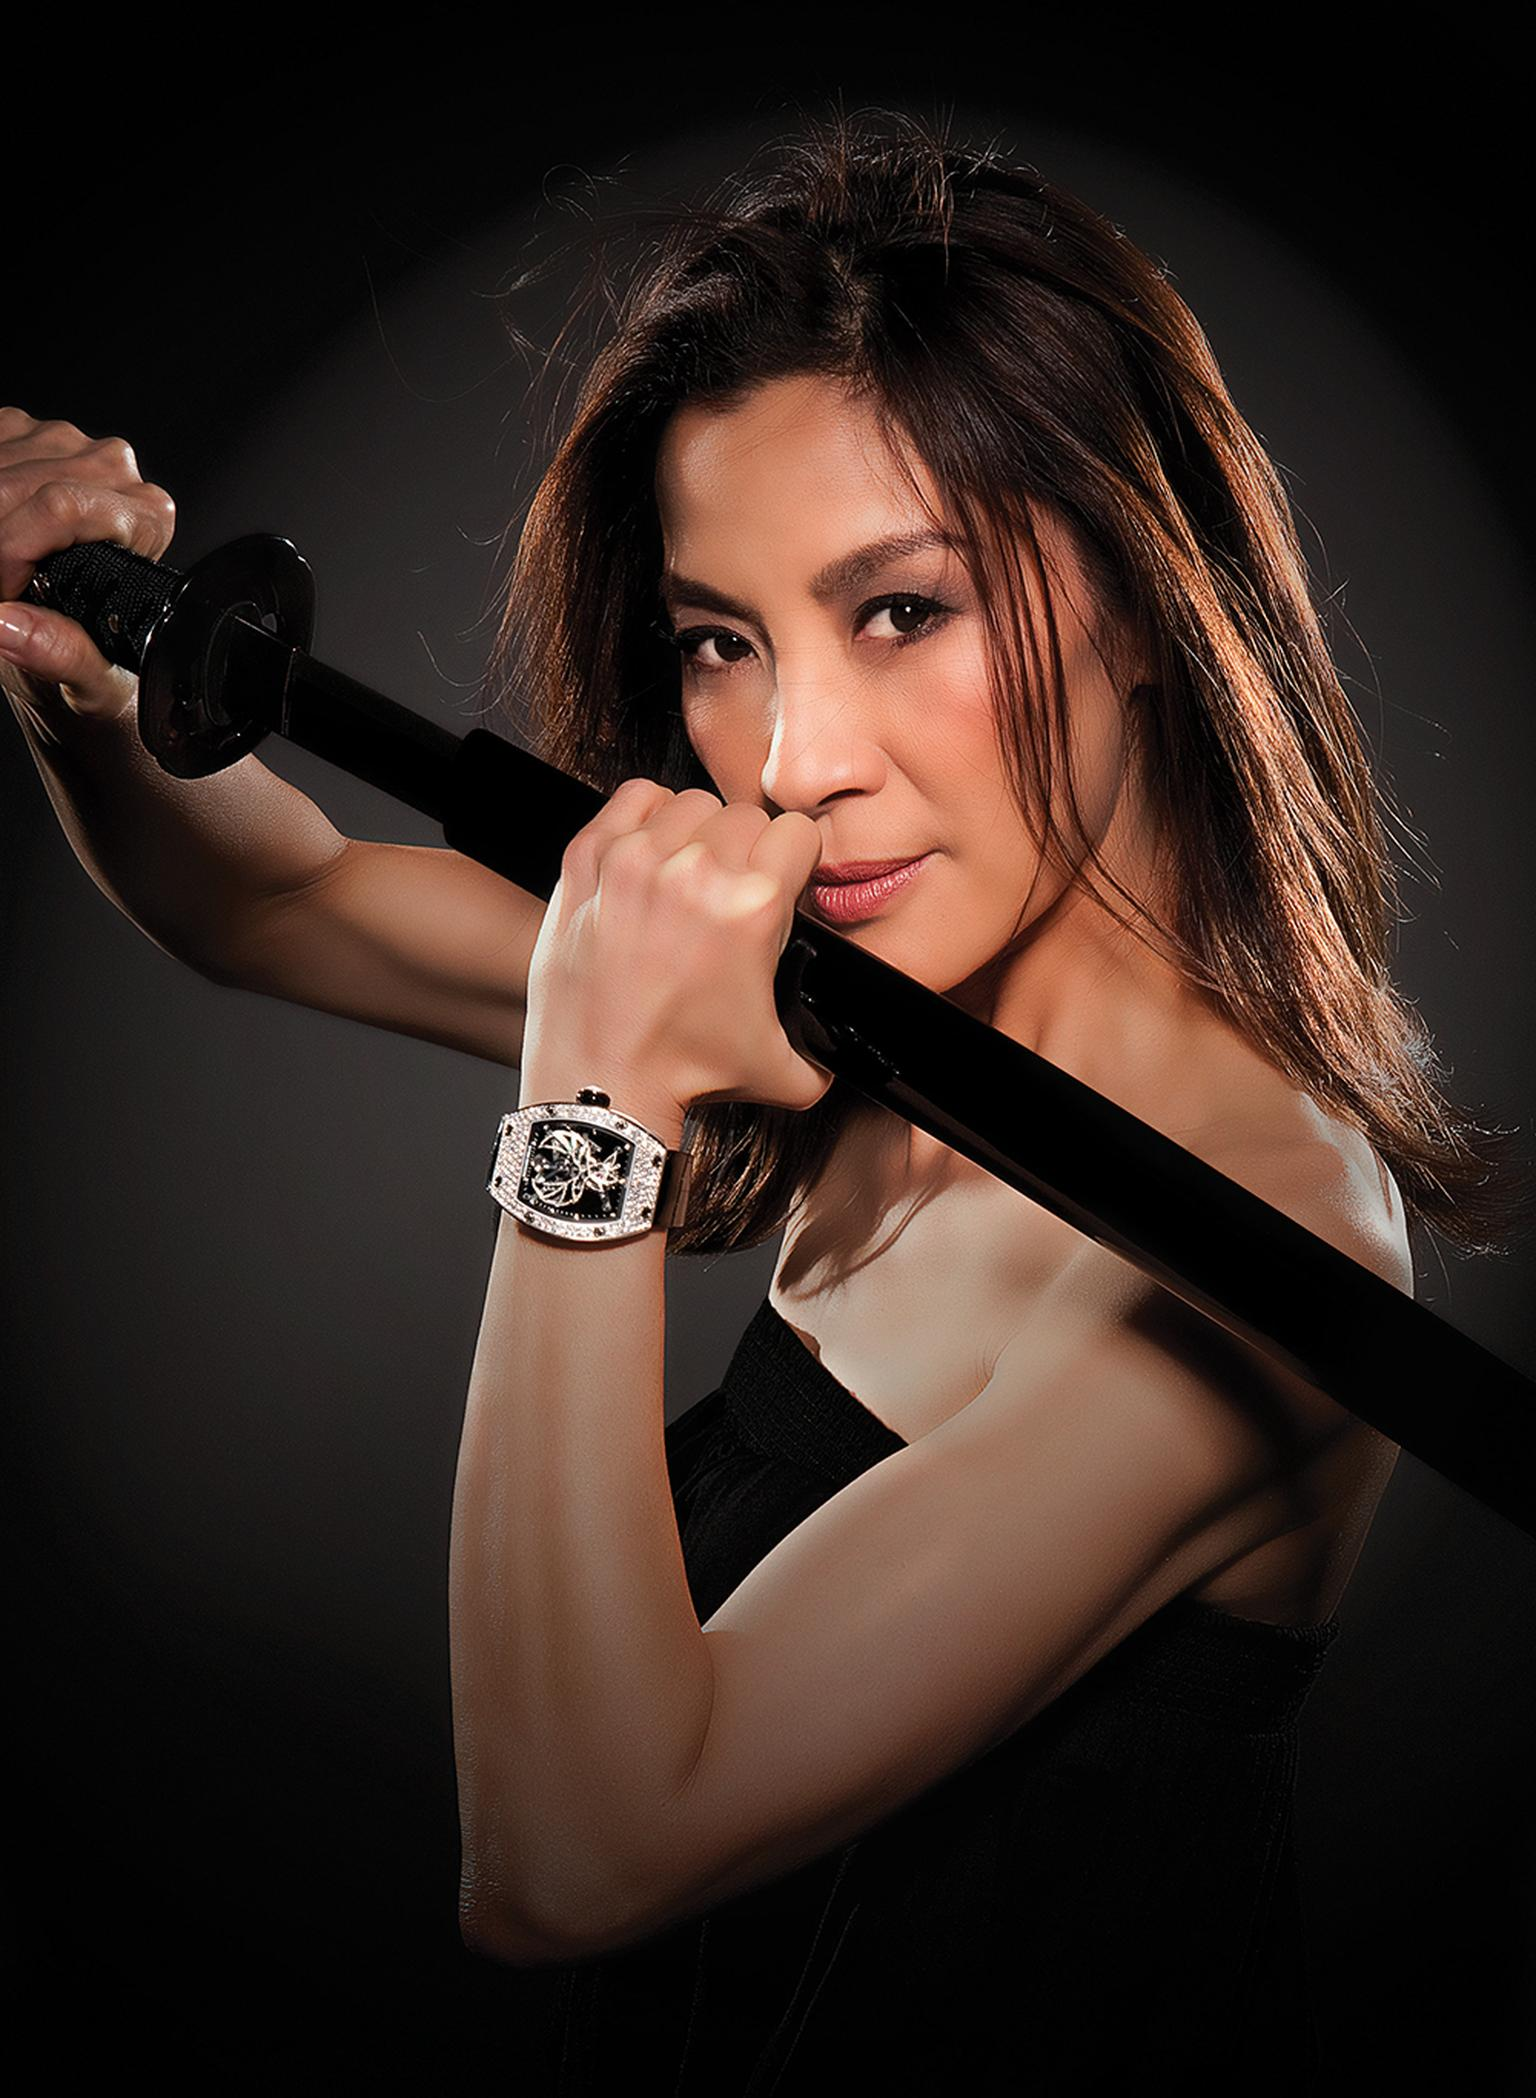 Richard Mille collaborated with internationally acclaimed martial arts actress Michelle Yeoh to create the RM 051 Phoenix Michelle Yeoh watch.